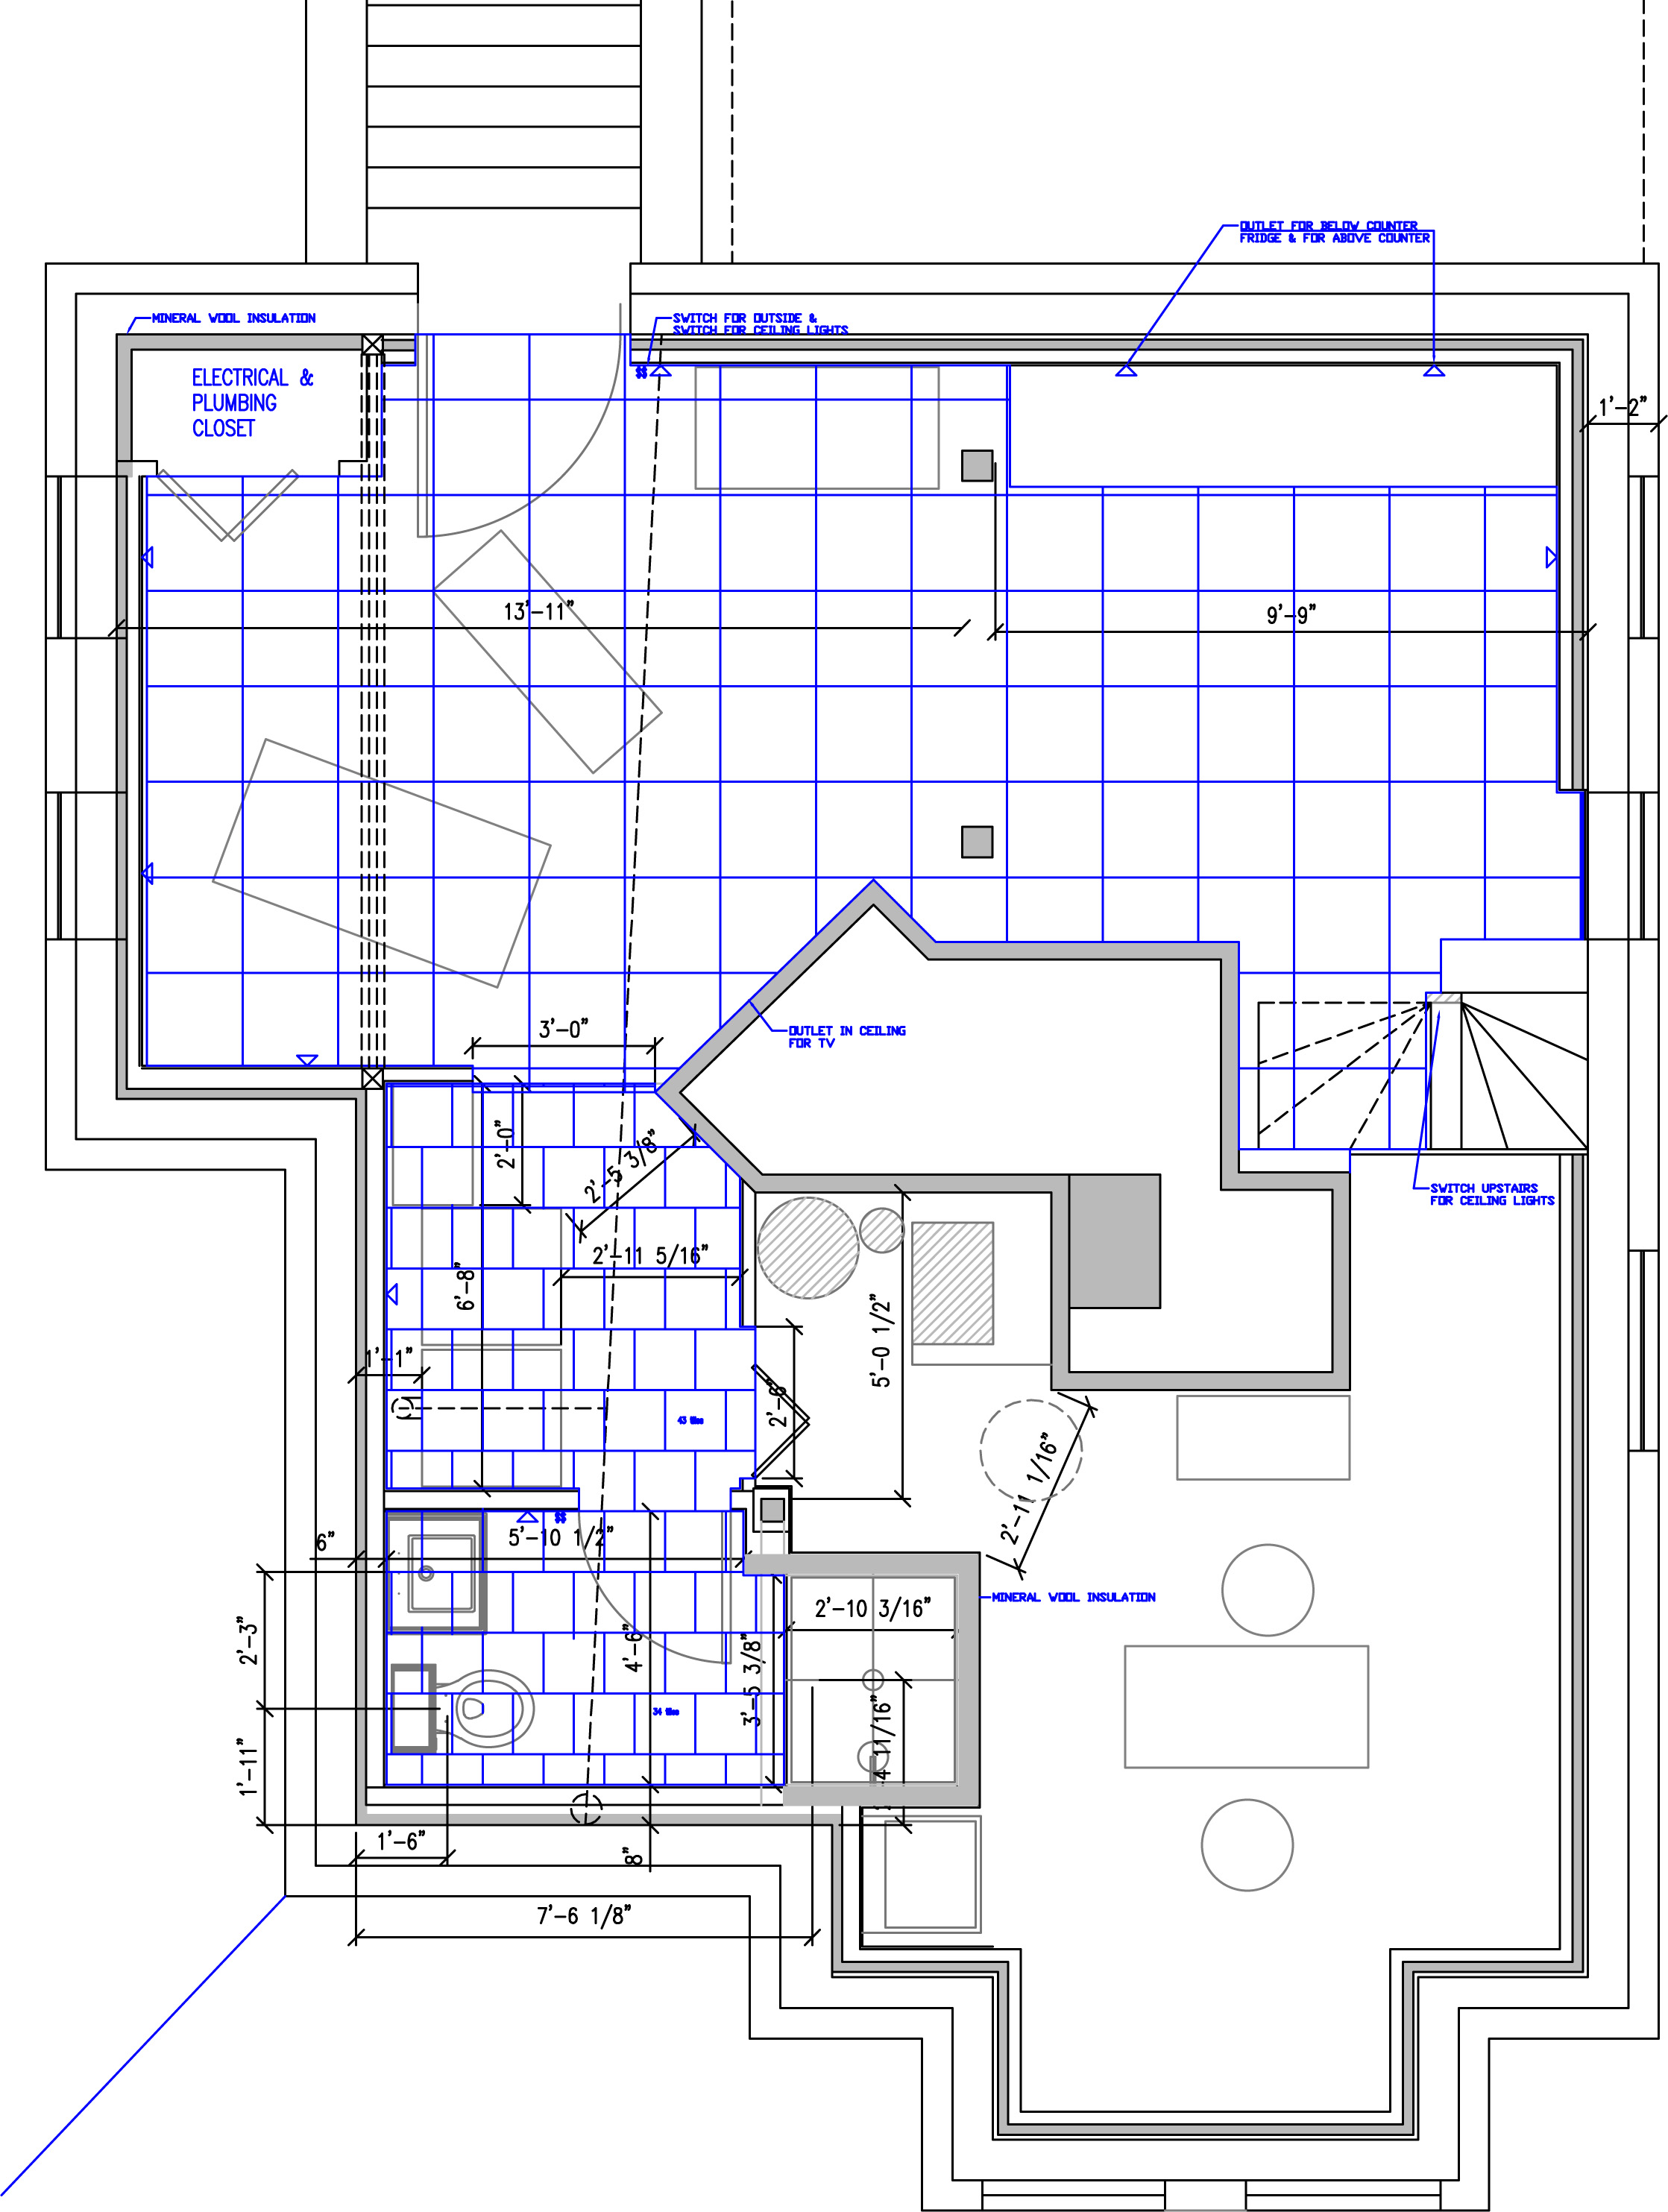 Cool 40 online floorplanner decorating design of best for Design your own basement online free